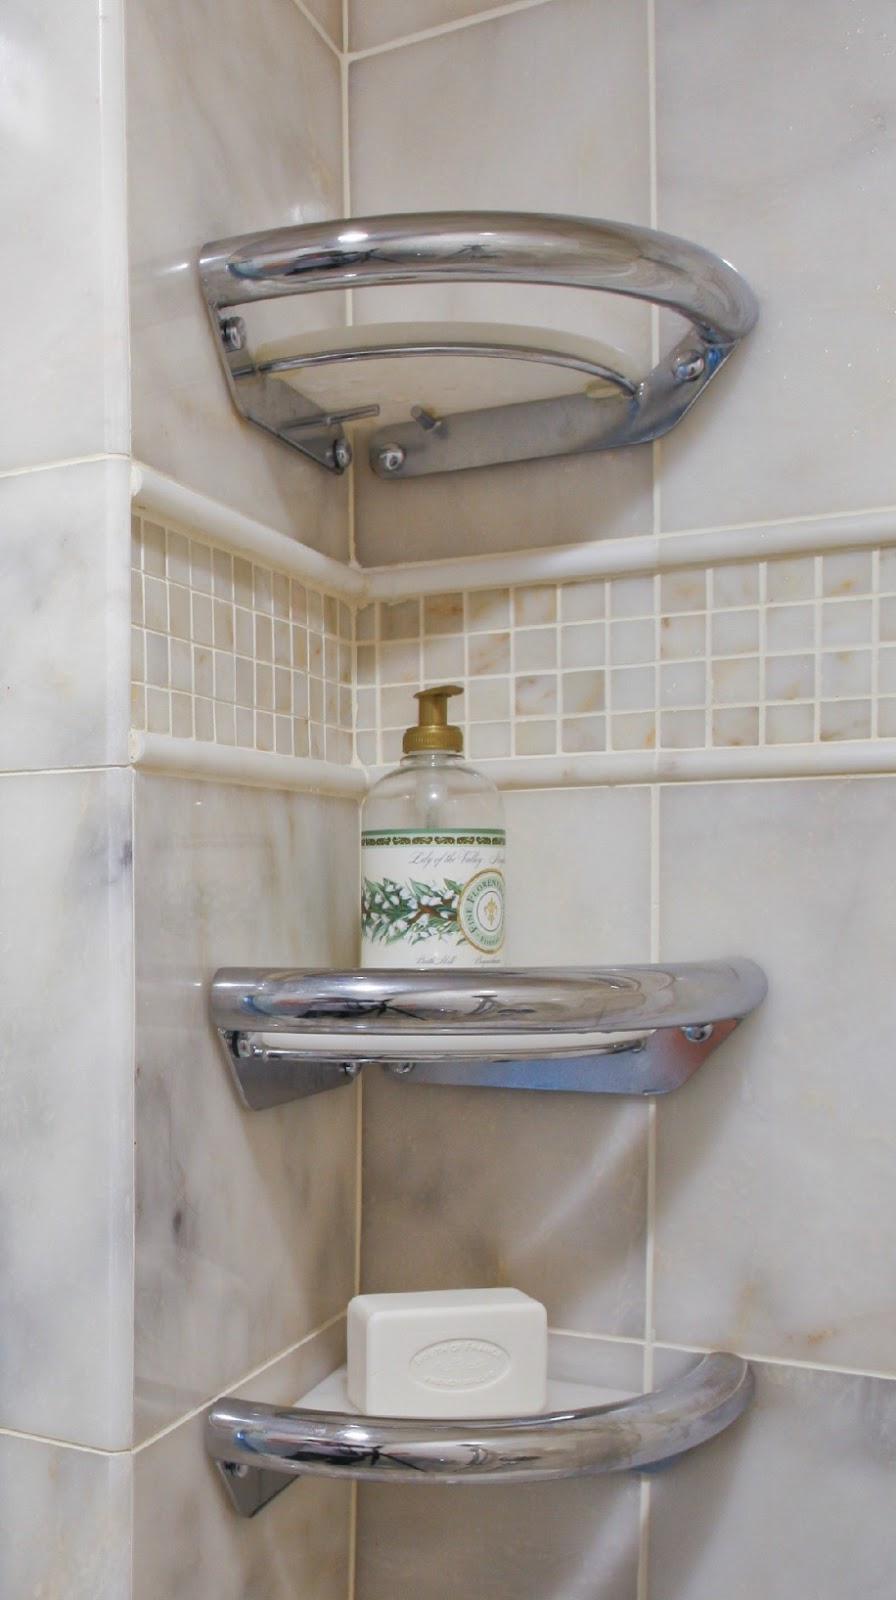 grab barsare also being integrated into the design of many bathroom